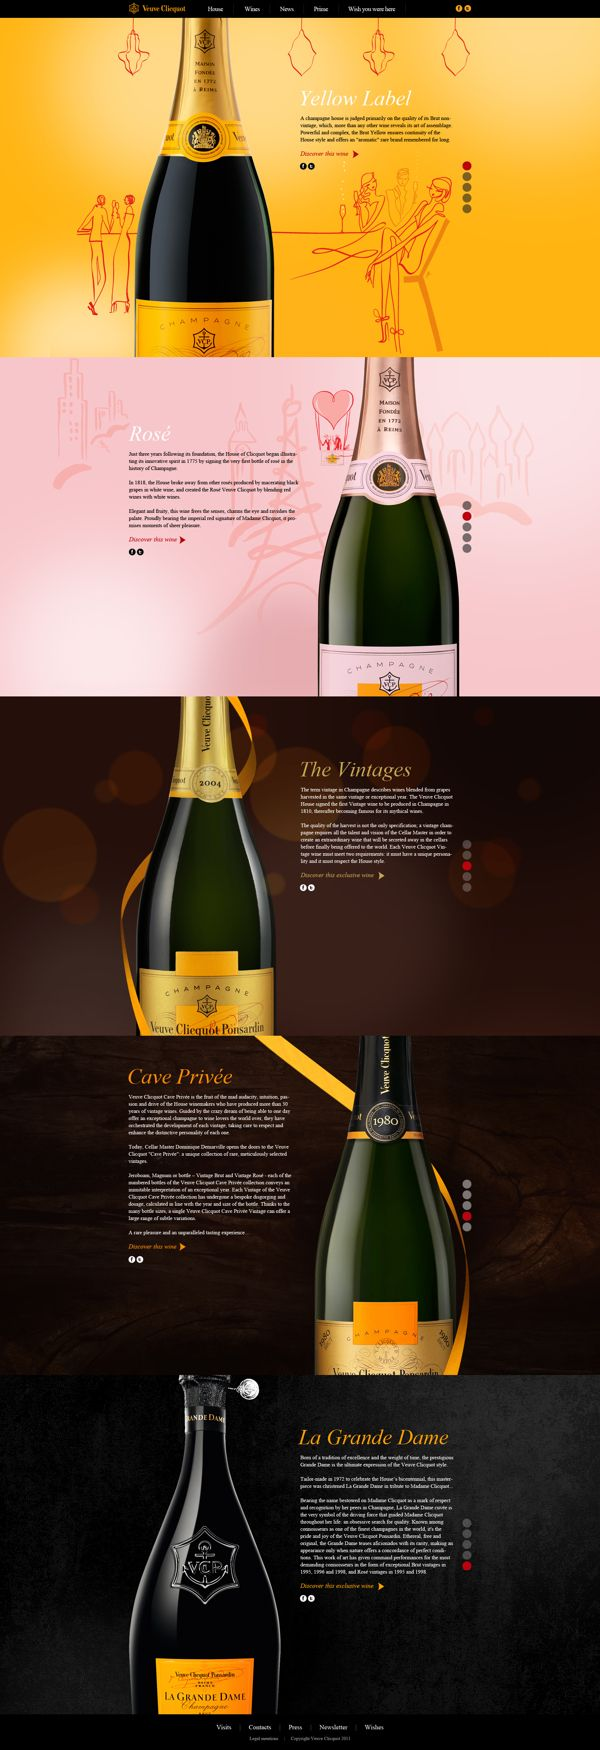 Veuve Clicquot by Christian Laporte, via Behance